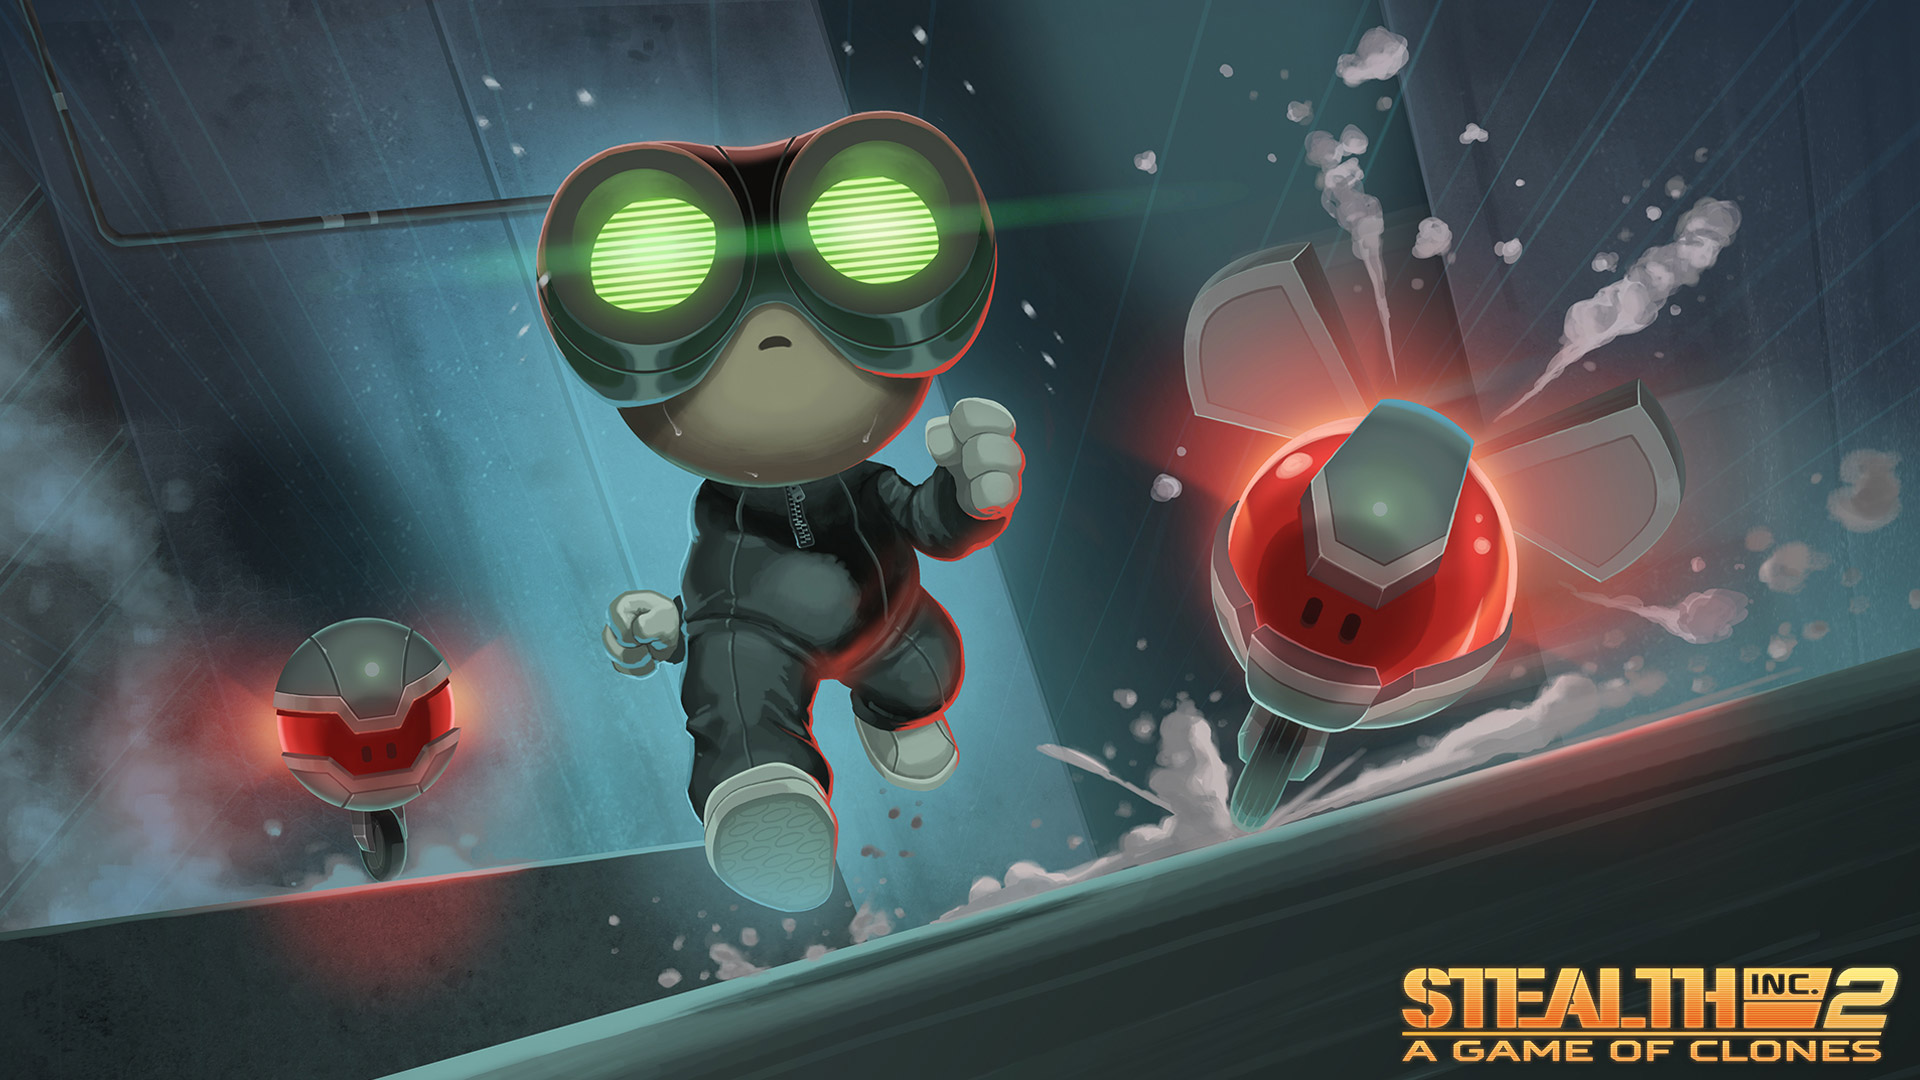 Stealth Inc 2: A Game of Clones Wallpaper in 1920x1080